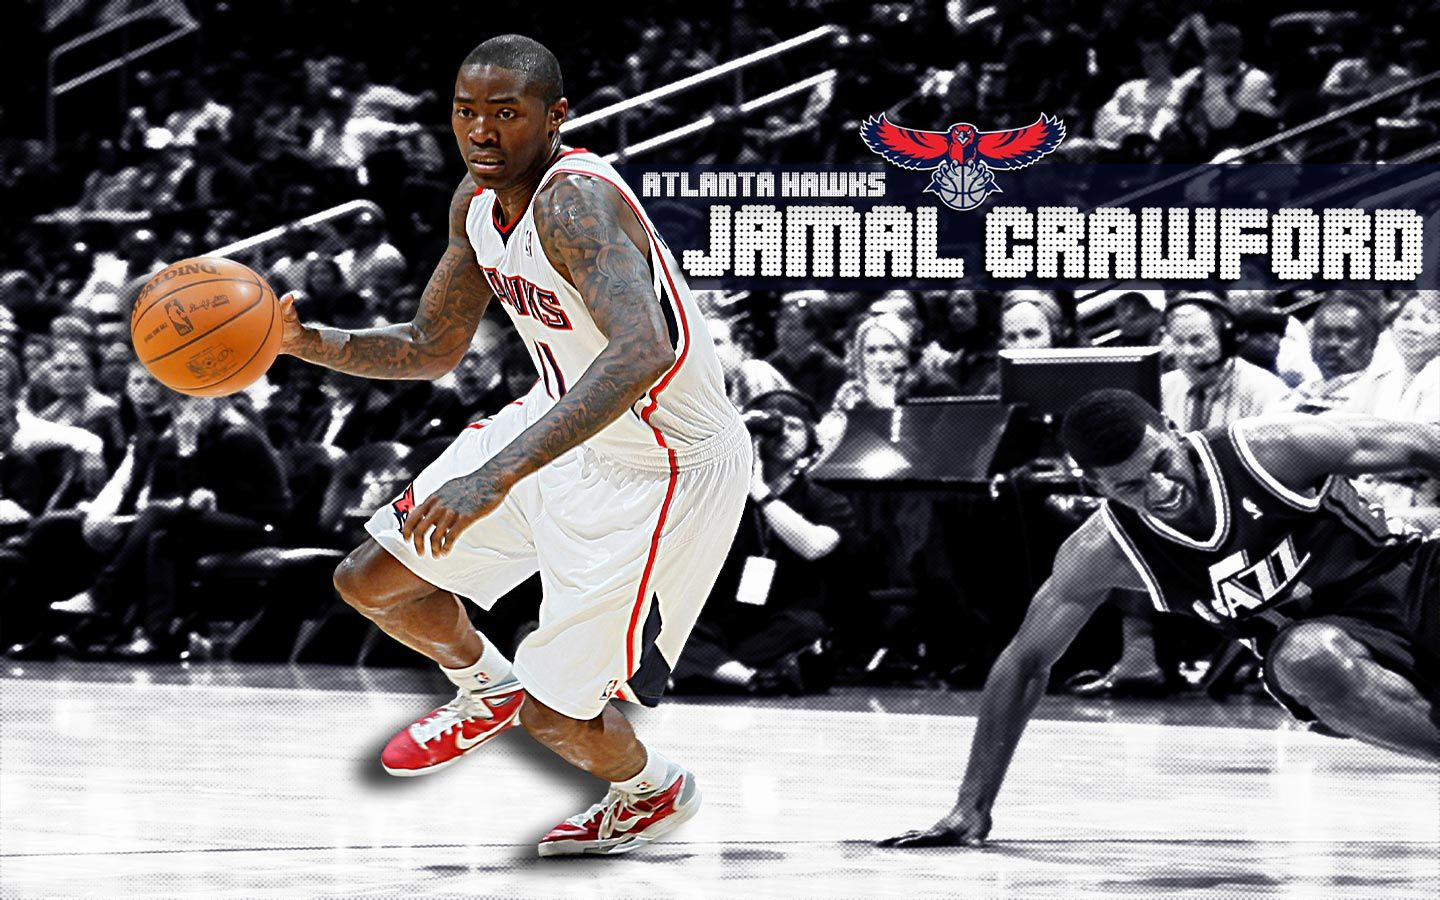 Jamal Crawford Wallpapers Basketball Wallpapers at